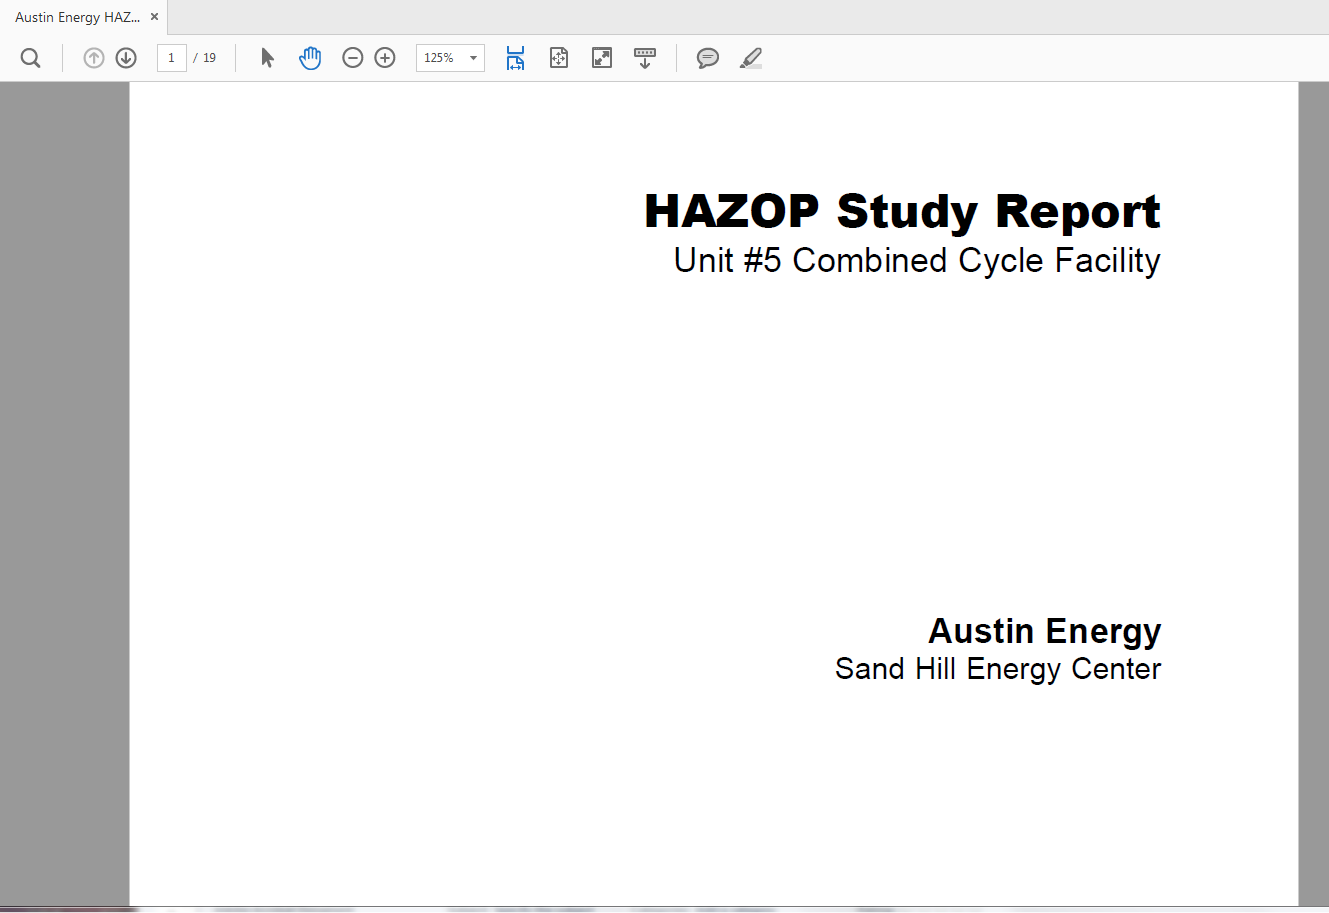 The cover of the Hazardous Operation Report.